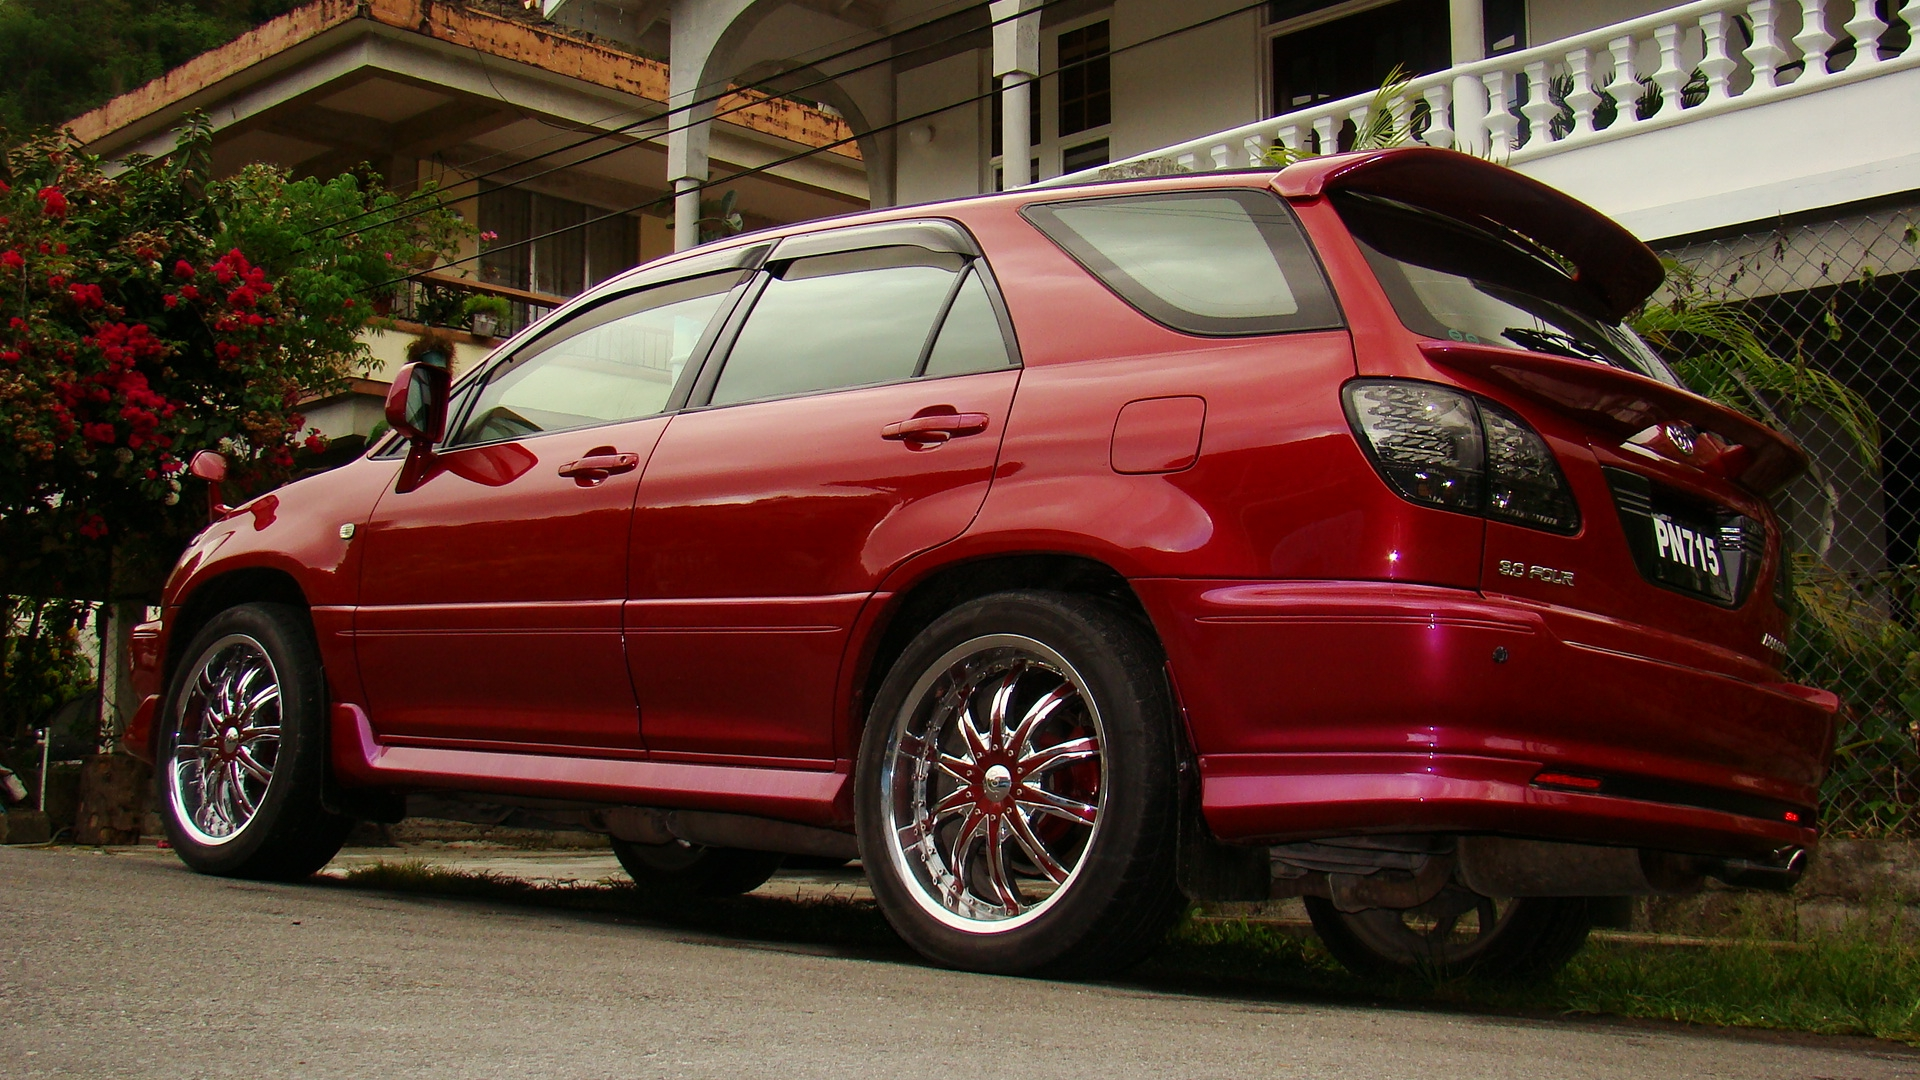 modified lexus rx330 with Harrier Lexus Interior on Unusual Cars To See Stanced V 2 2 in addition 2003 Lexus Rx300 Cars Wallpaper moreover Fluorescent Wheels together with Harrier Lexus Interior likewise Junction Produce Stainless Vip Pillar Reflector.